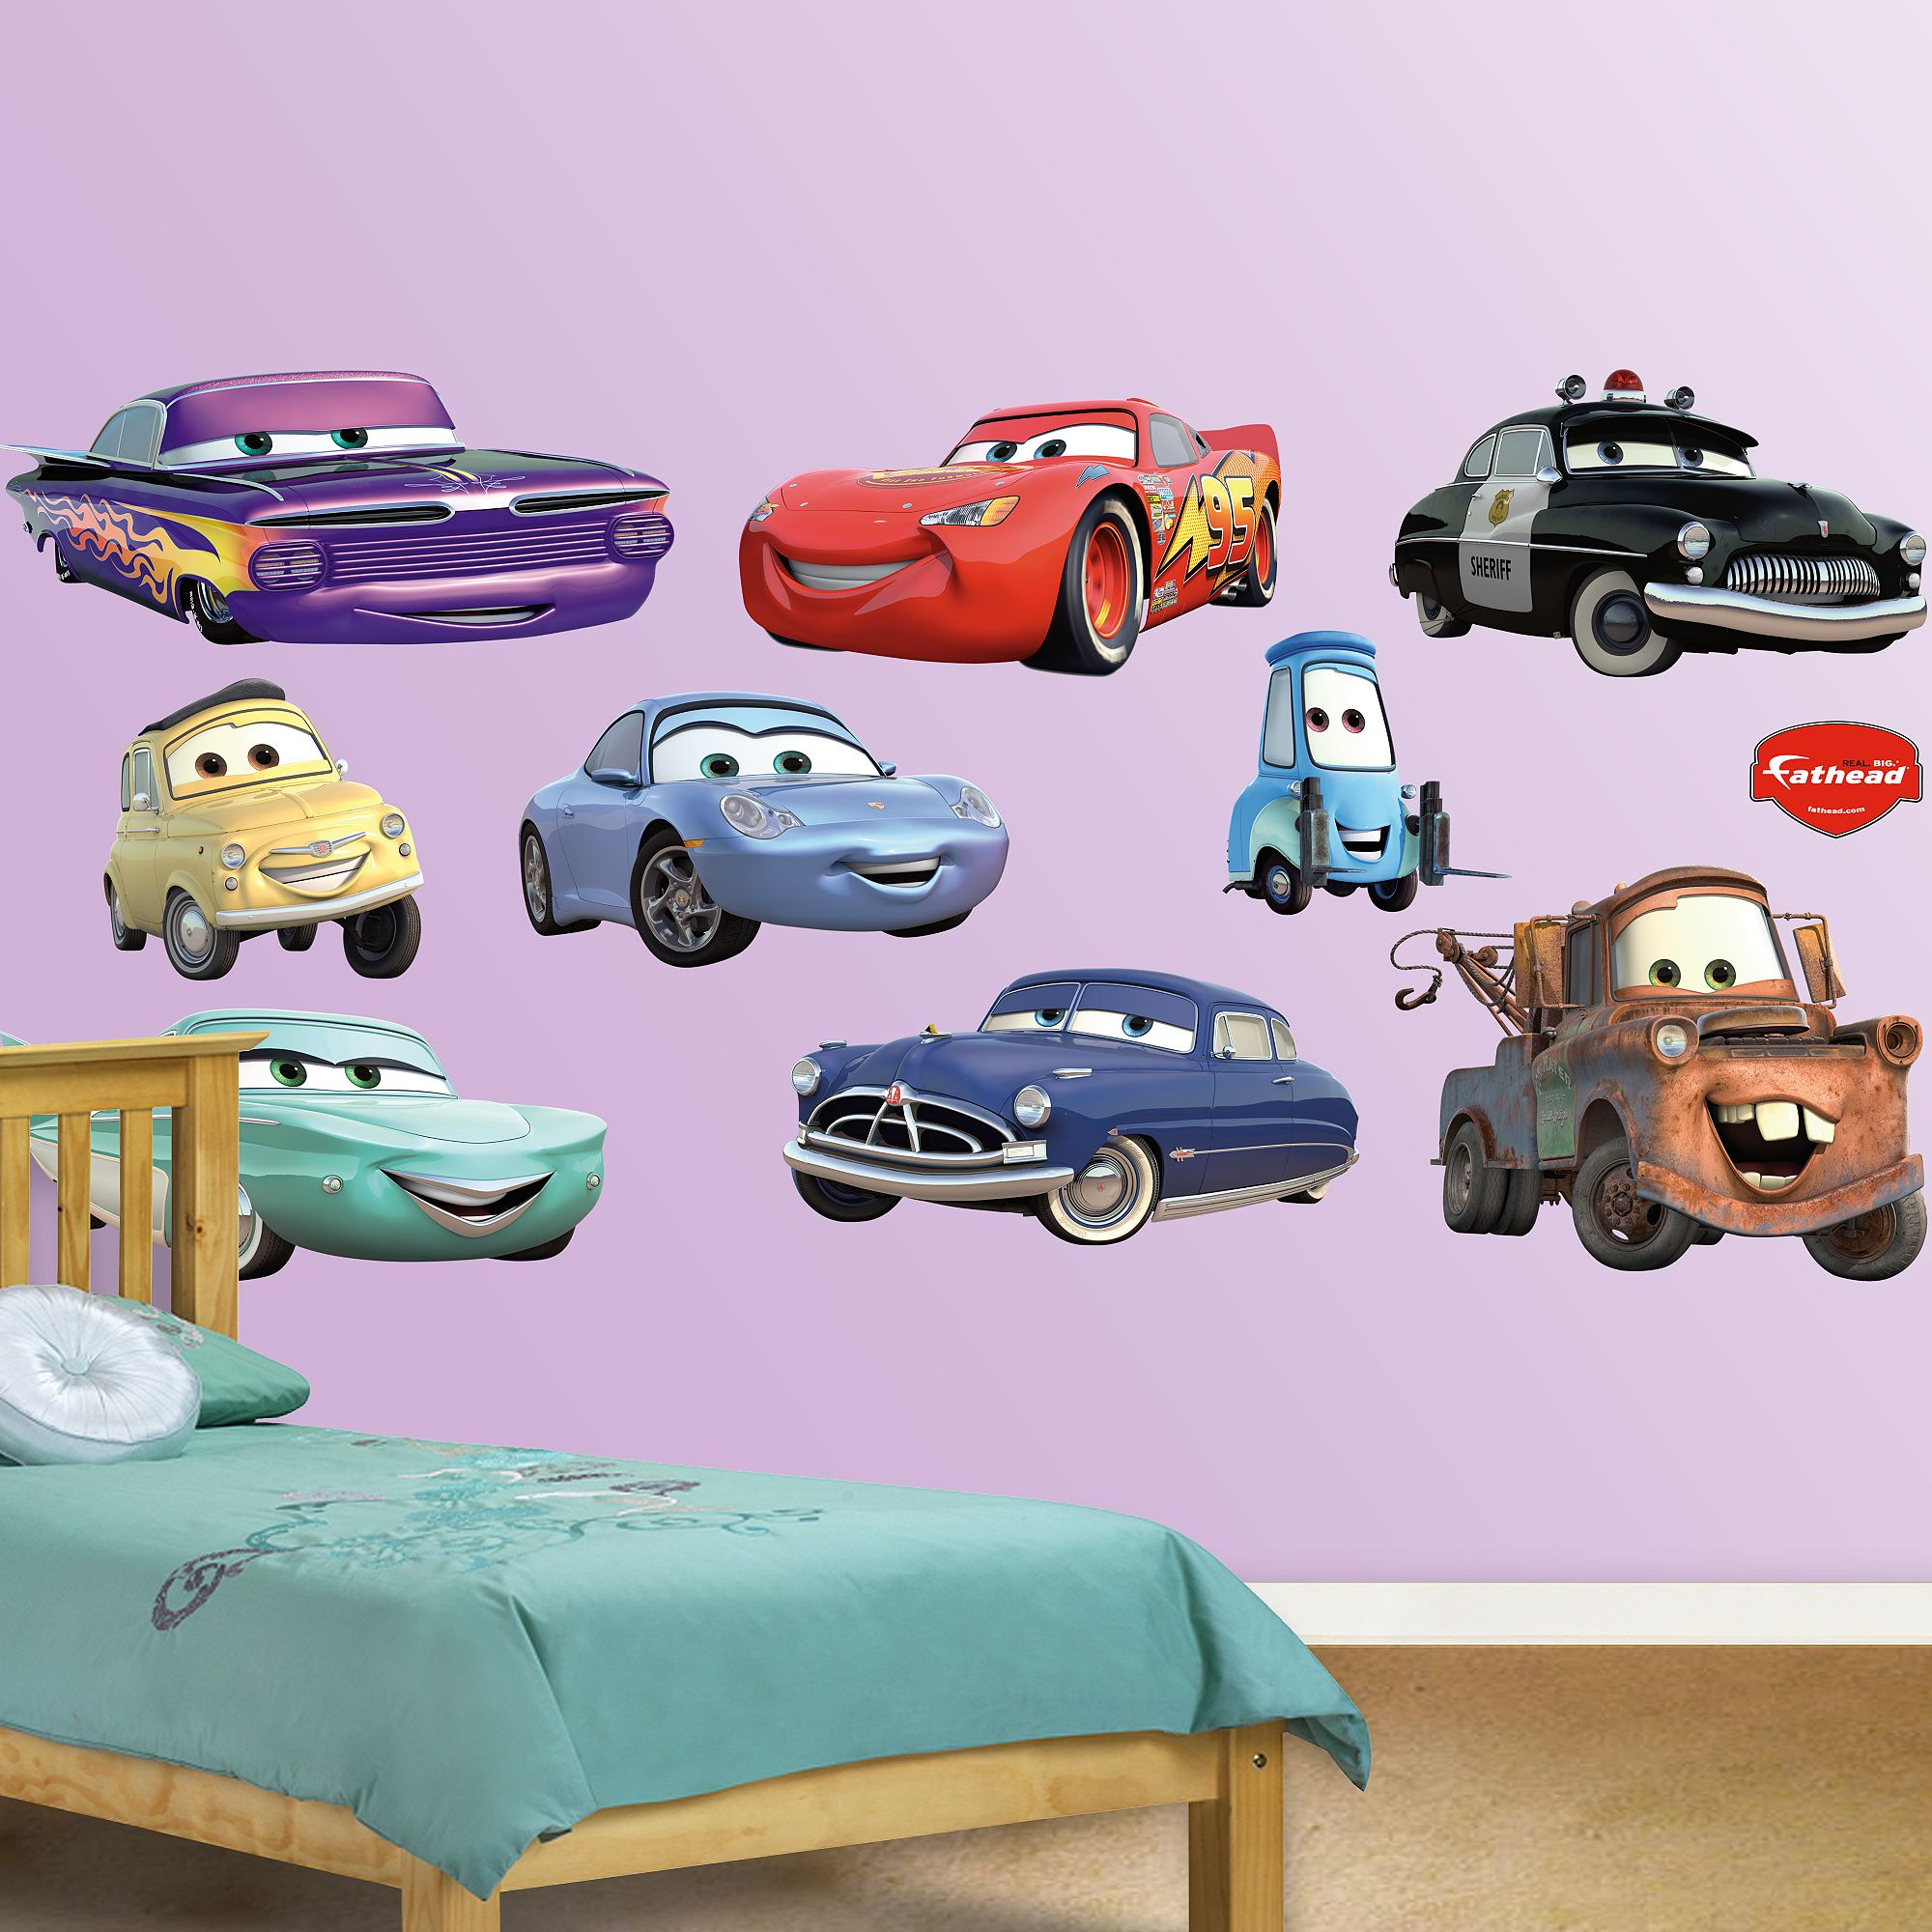 Cars Collection X Large Officially Licensed Disney Pixar Removable Wall Decals Disney Pixar Cars Disney Cars Removable Wall Decals [ 2000 x 2000 Pixel ]